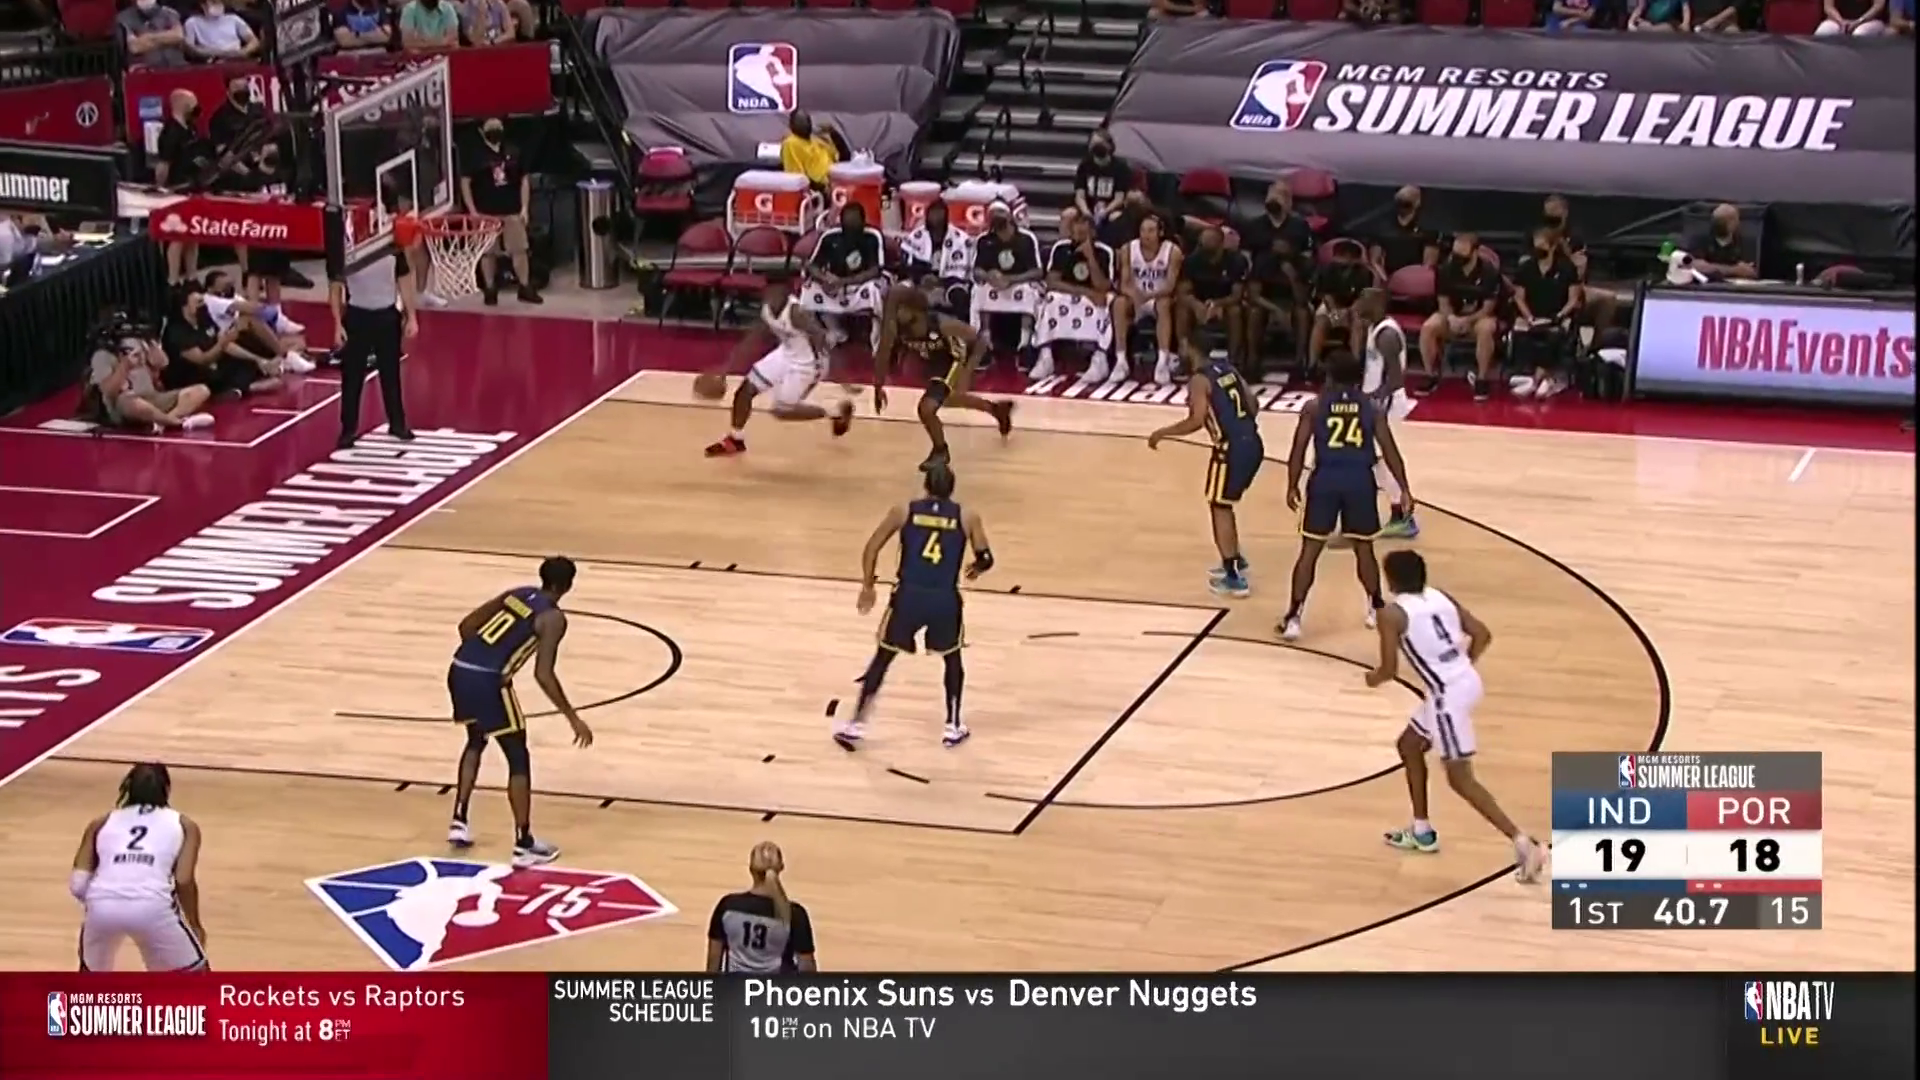 Trail Blazers 64, Pacers 97 | Summer League Highlights